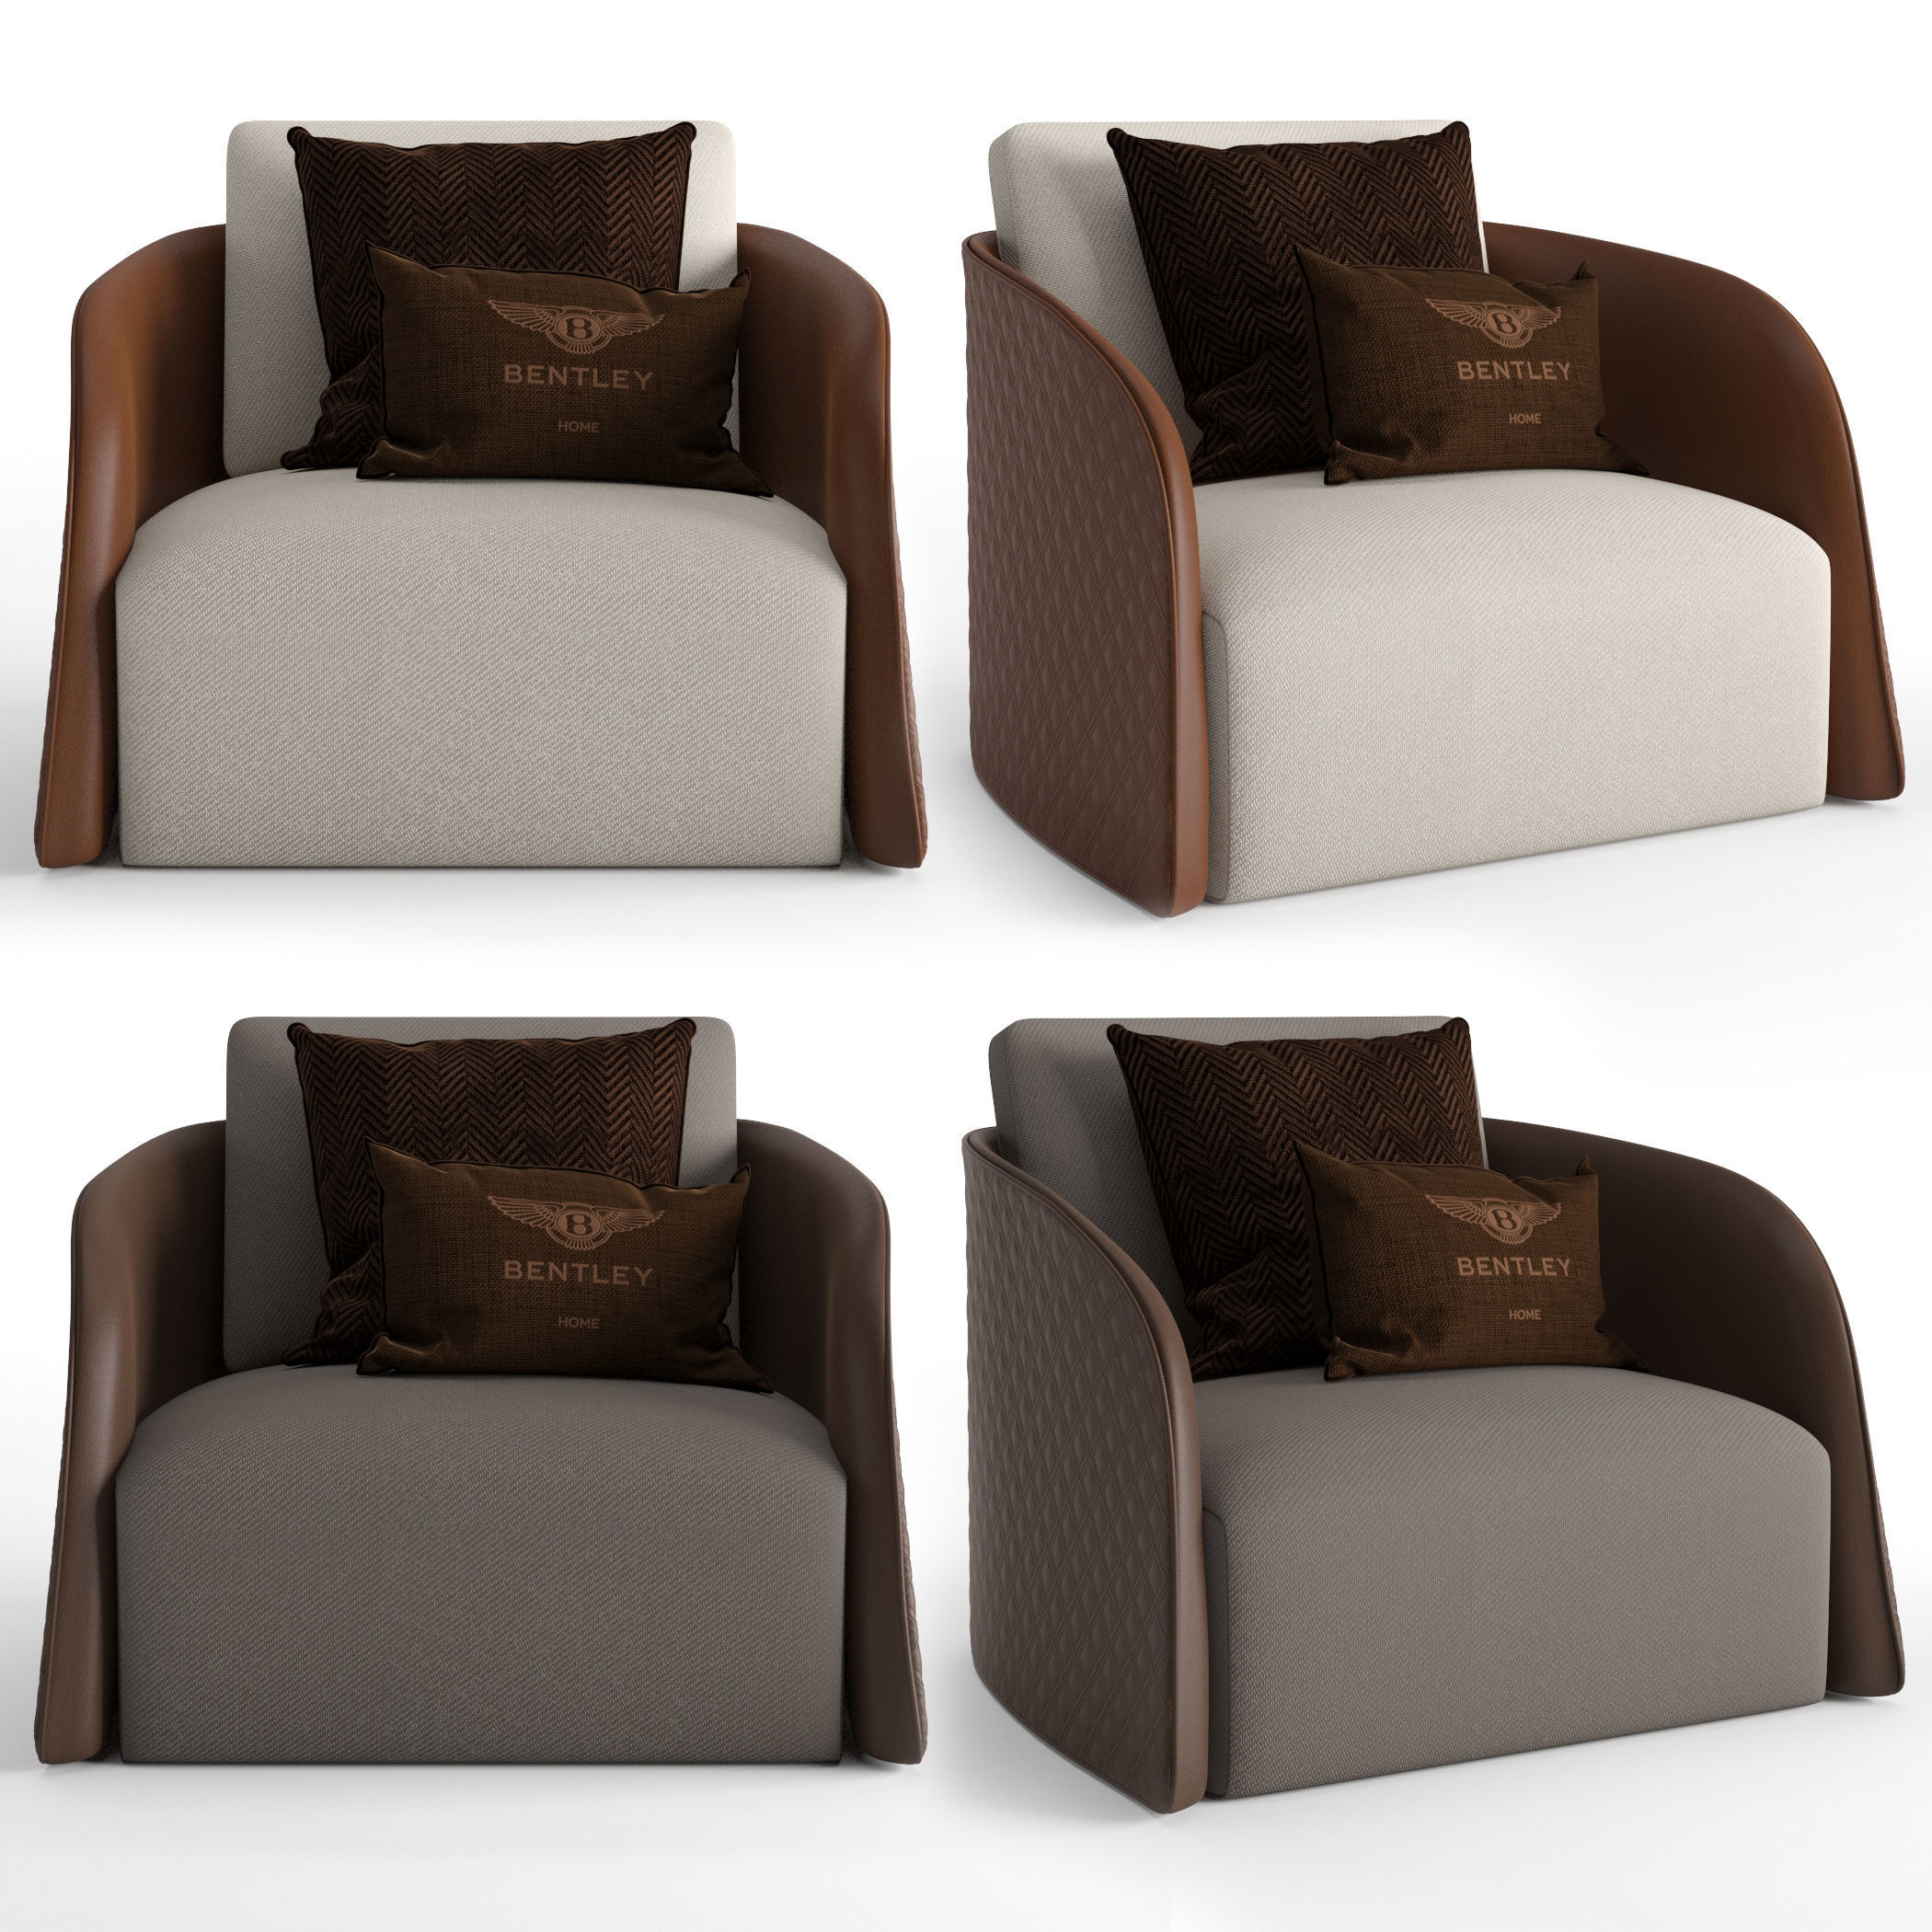 3D Bentley Home Swan Armchair | CGTrader